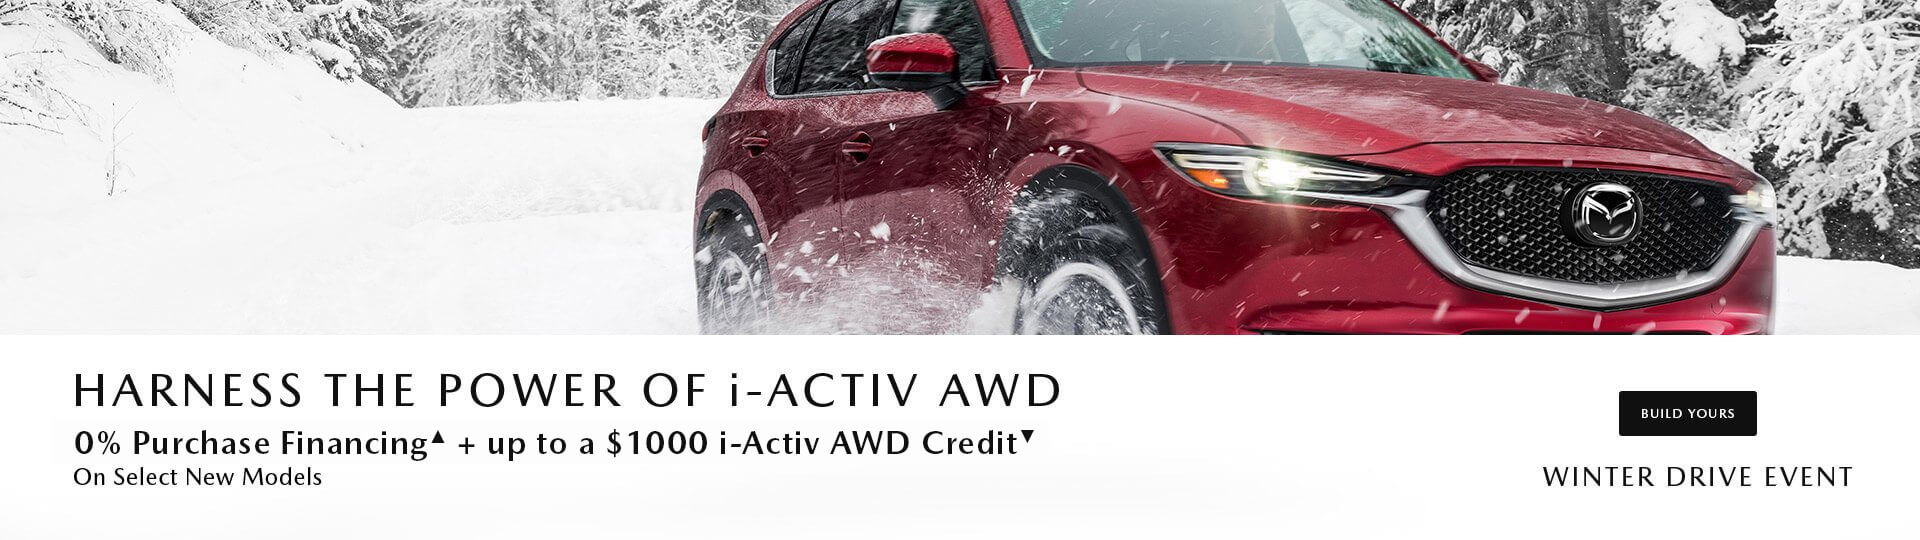 Angevaare Mazda 2019 Winter Drive Event. Harnesss the power of i-Activ AWD with 0% Purchase Financing and an up to $1000 i-Activ AWD Credit on Select Models.